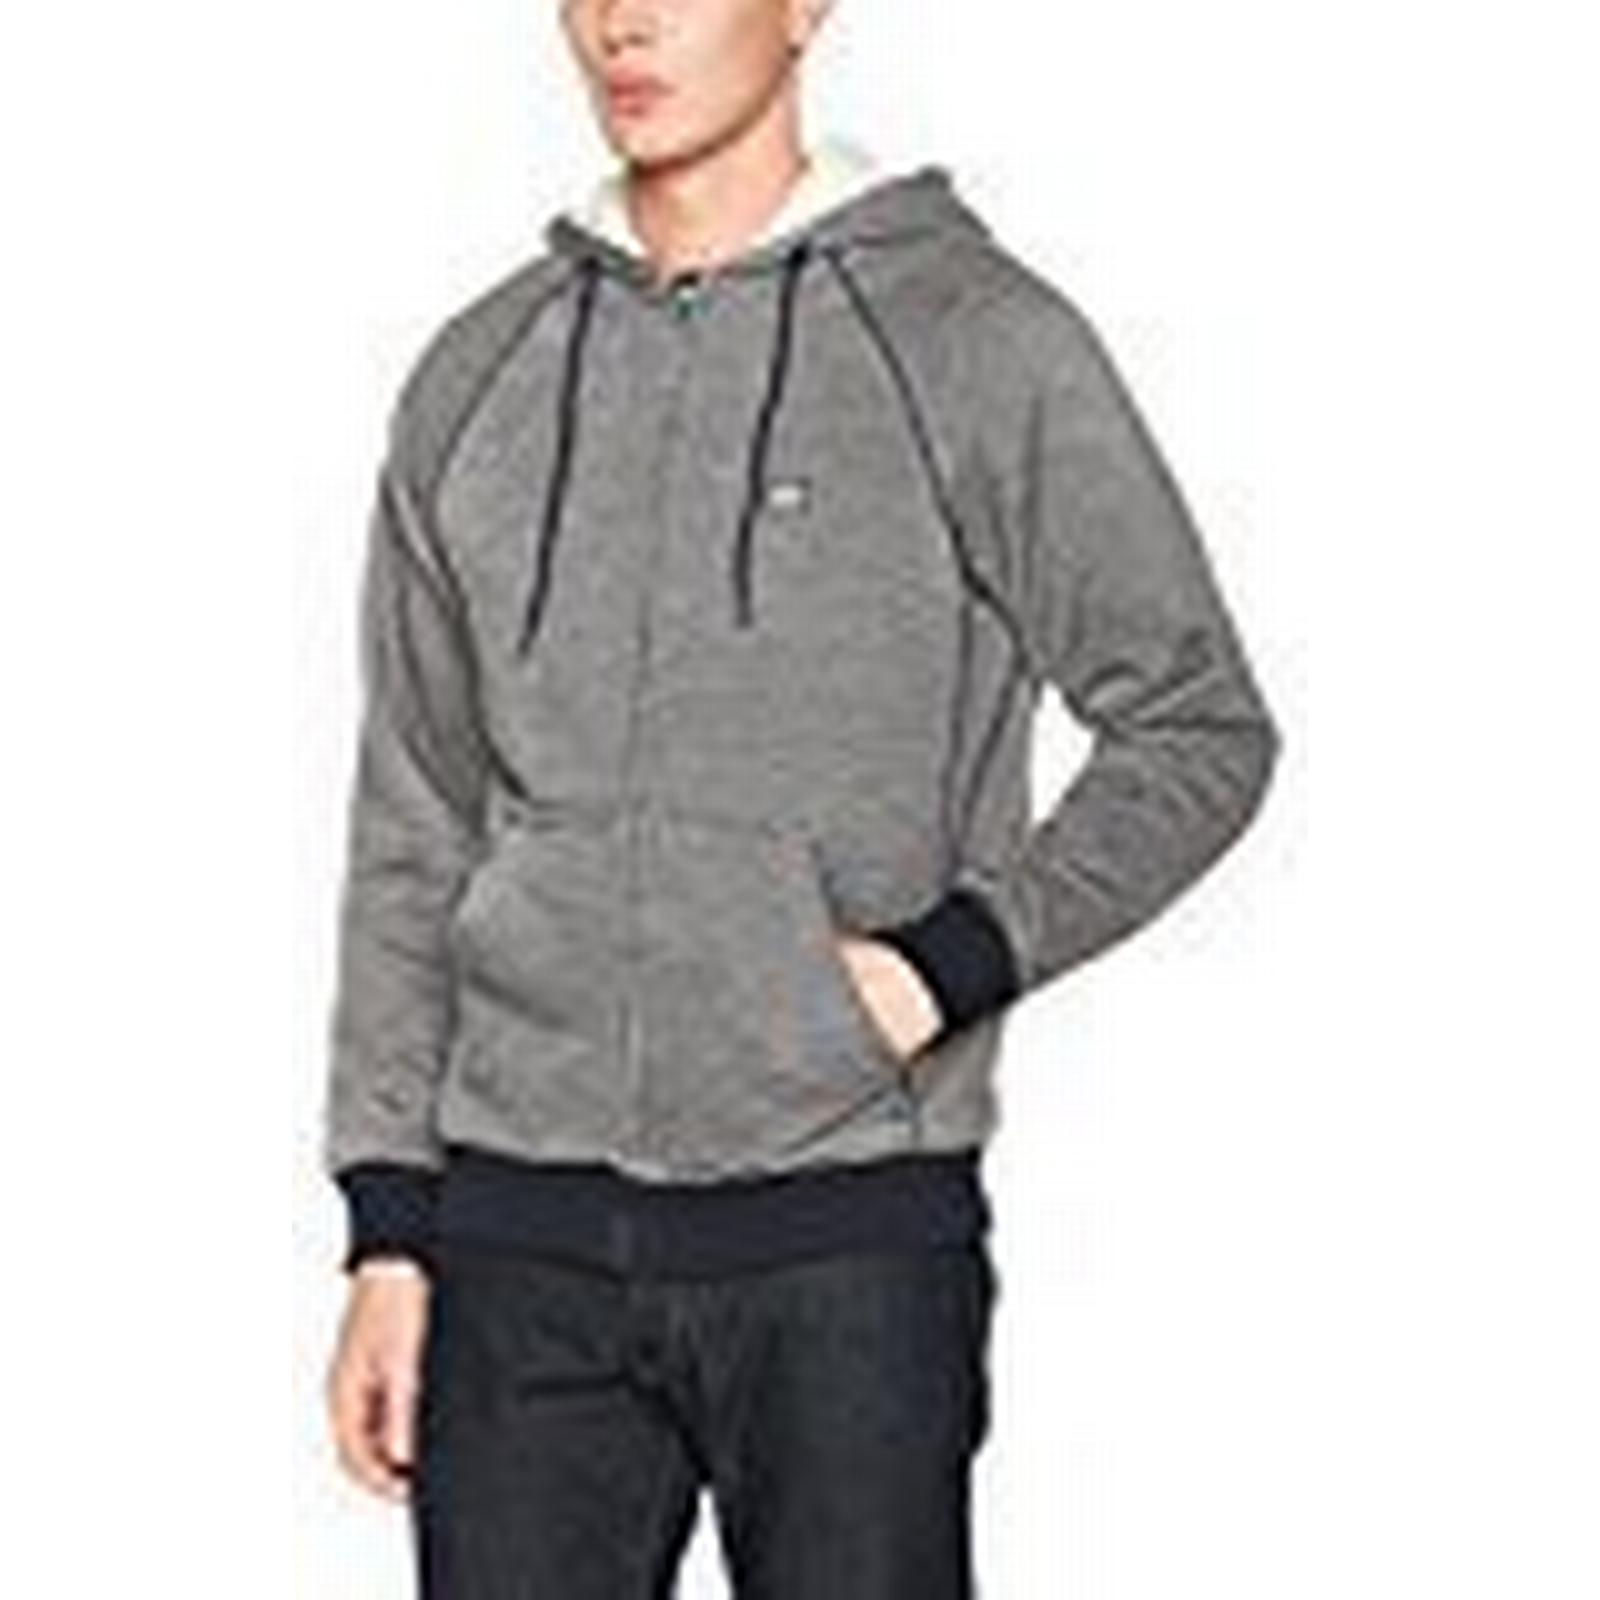 Billabong Balance Hoody, Sherpa, Men's Zip Up Hoody, Balance Men's, Balance Sherpa, marine, M 354295